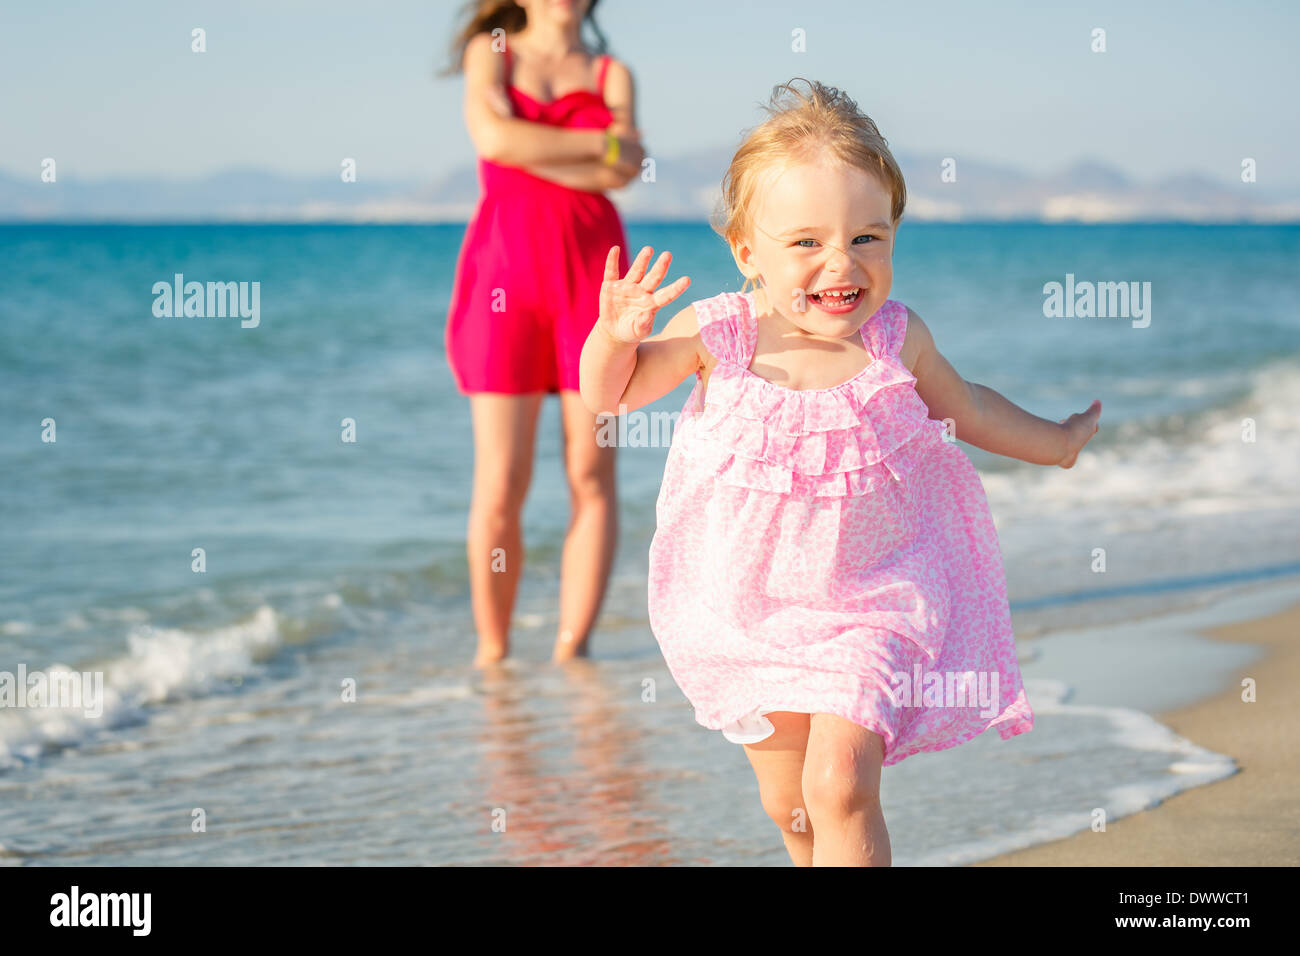 Little girl running on the beach - Stock Image